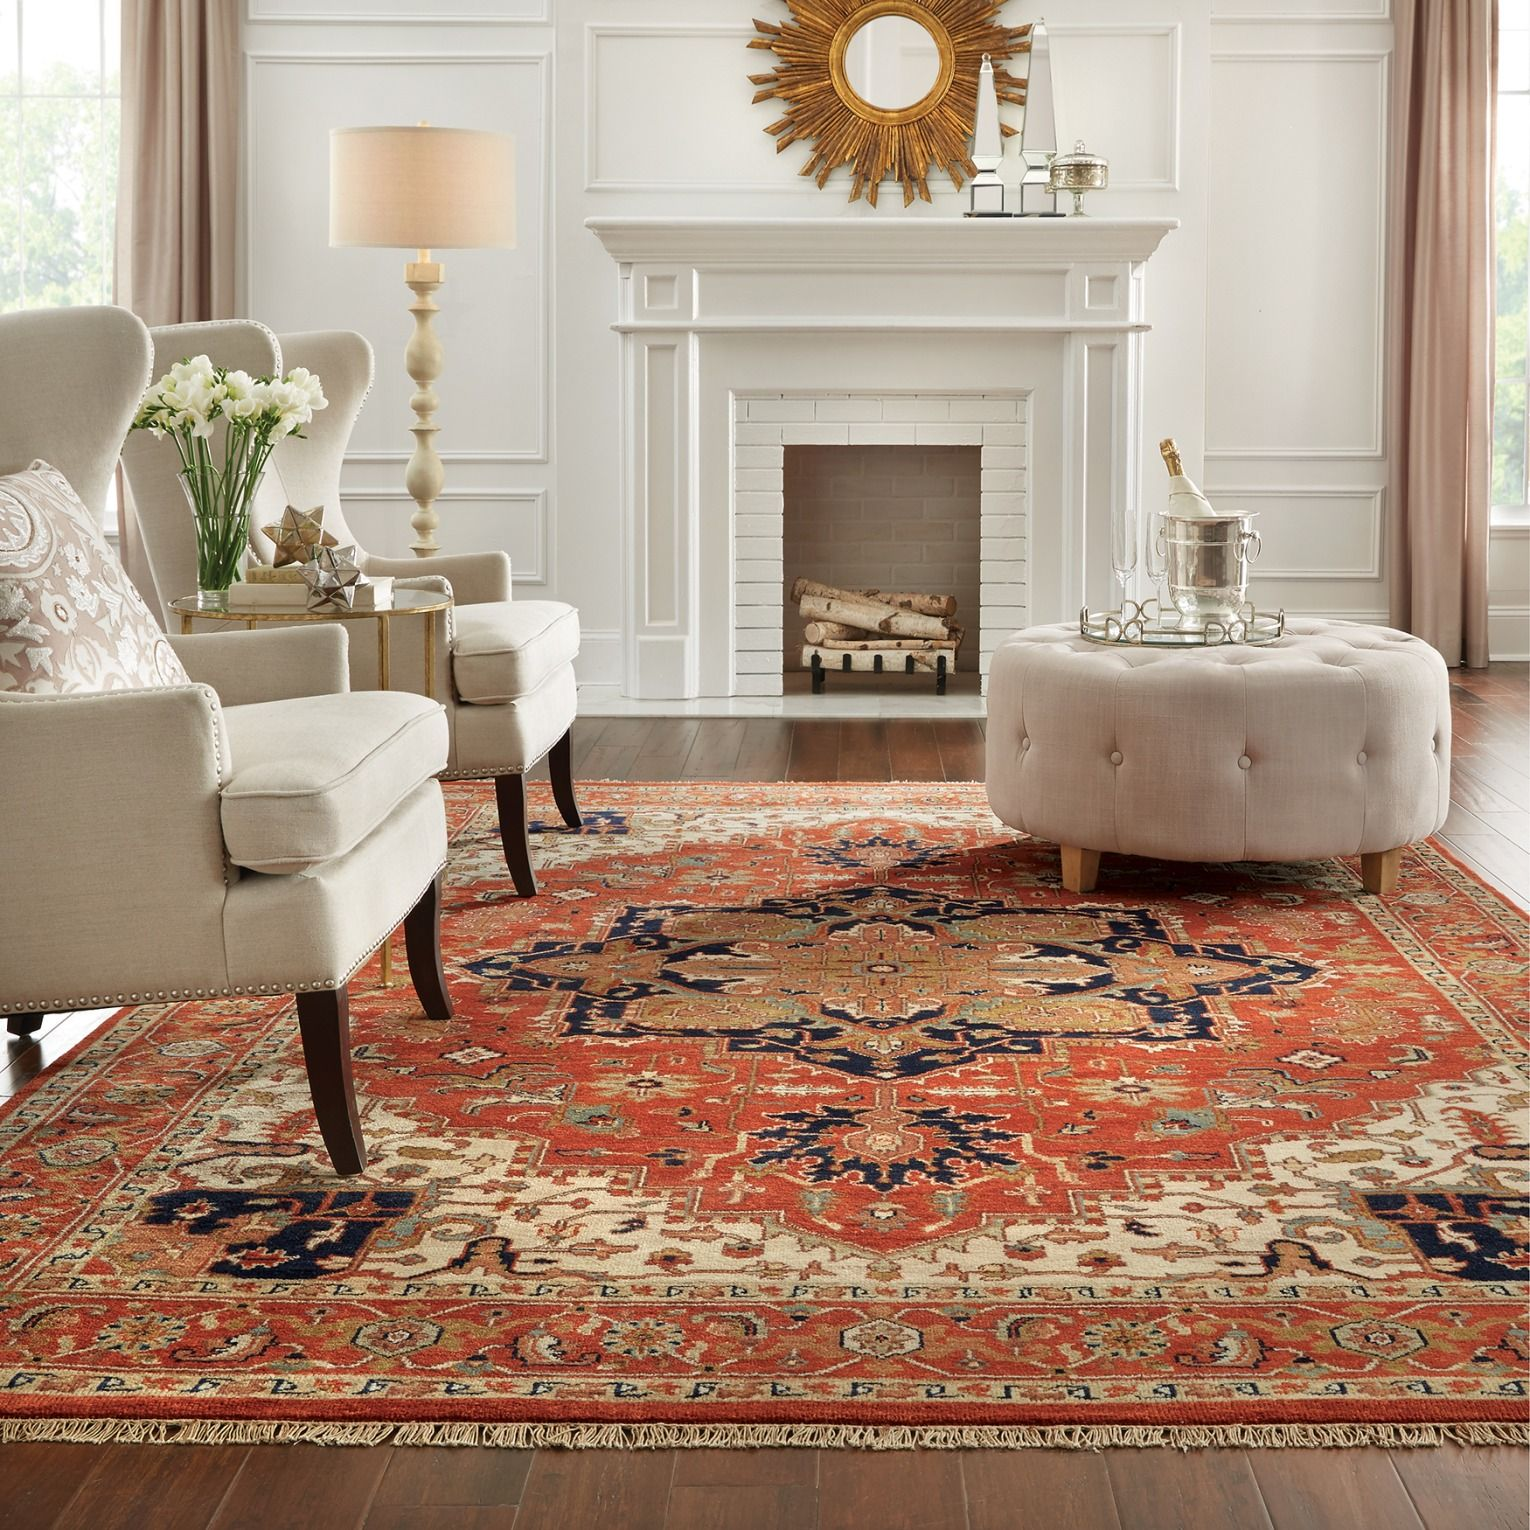 Choose The Perfect Rug: Our Guide To All Things Rugs